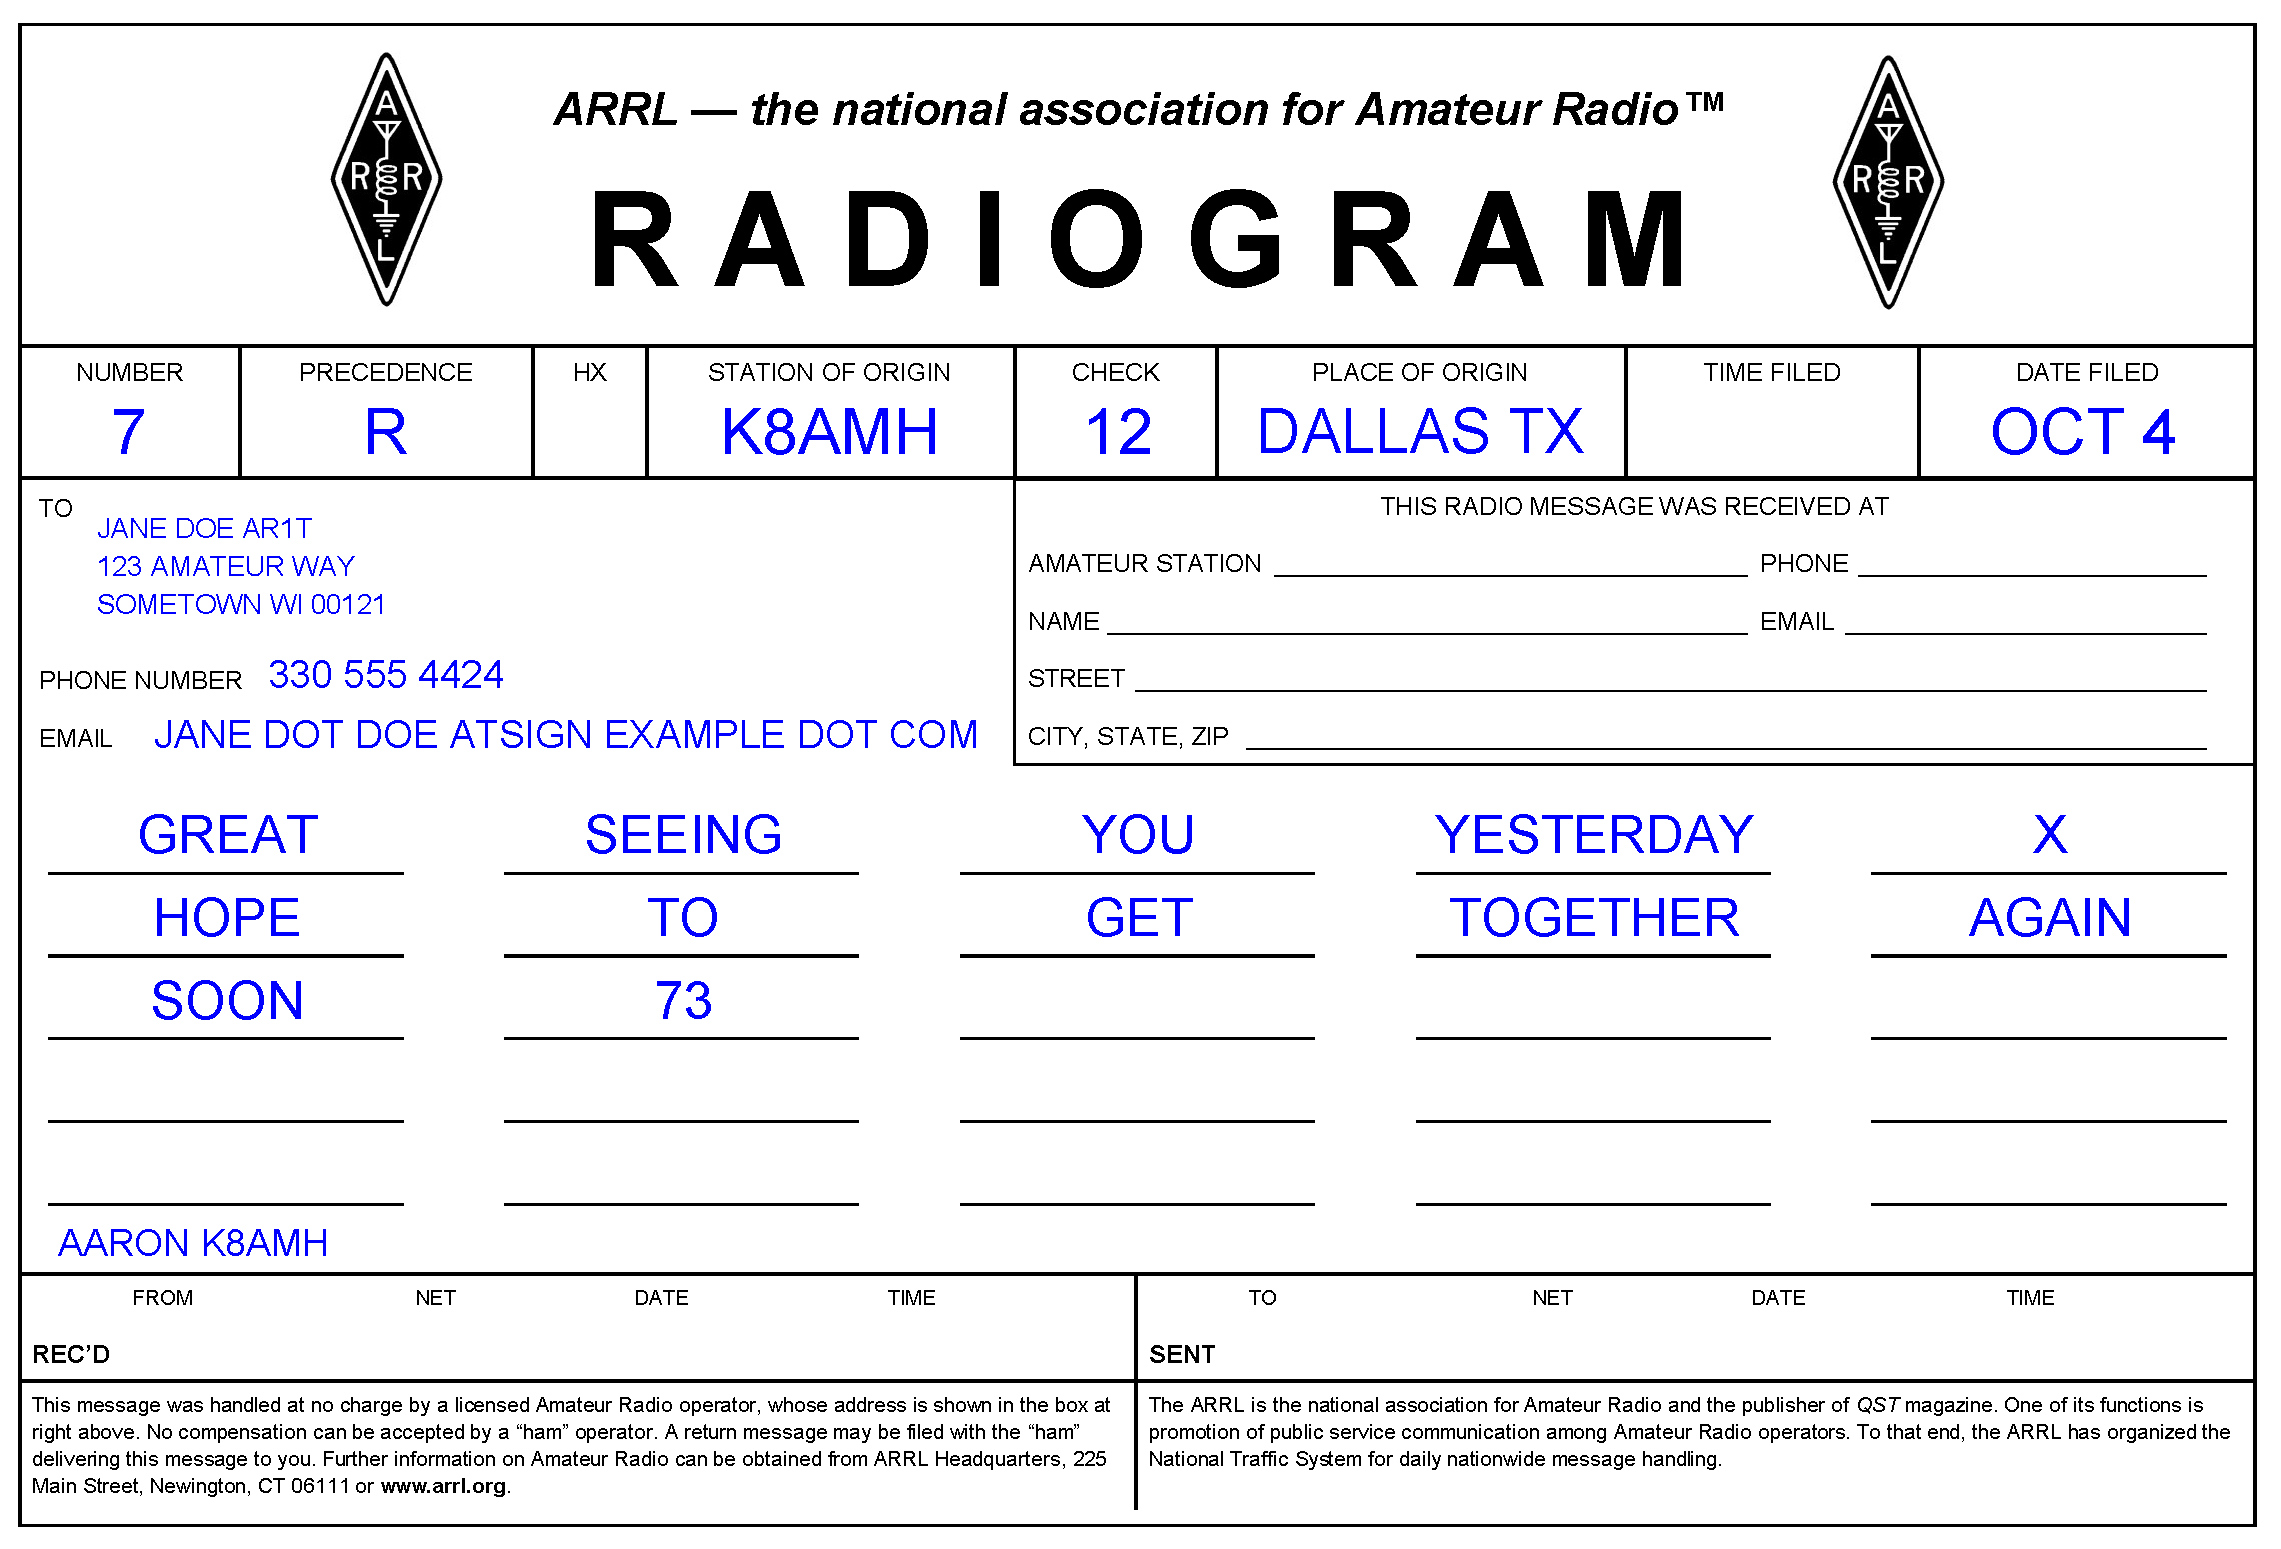 This is the completed radiogram example.